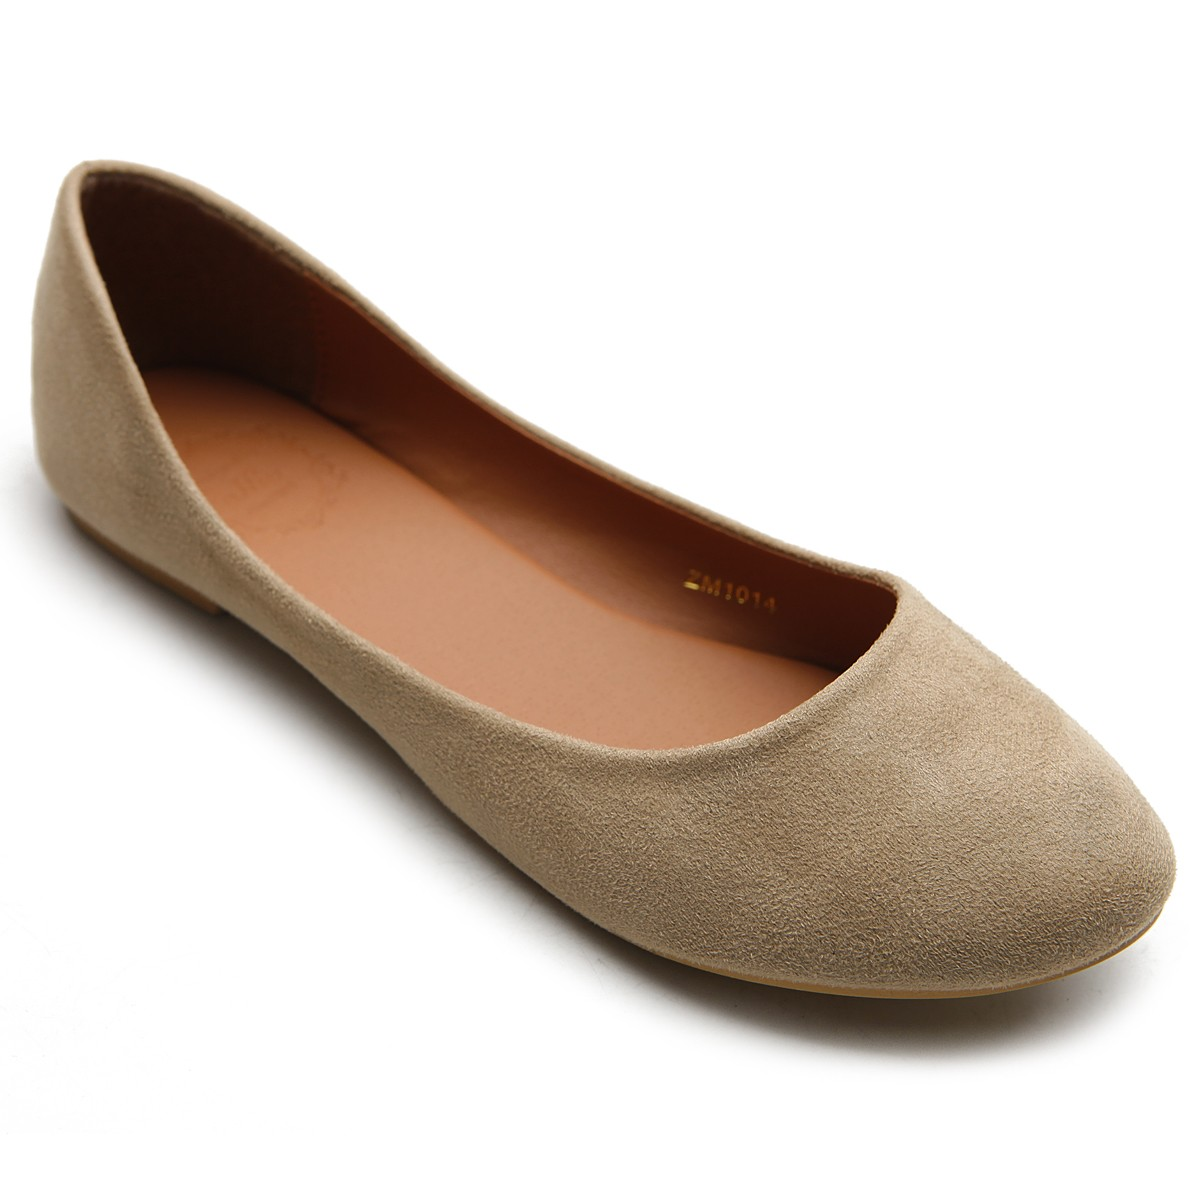 Visit Tory Burch to shop for Rosalind Suede Ballet Flat and more Womens Ballet Flats. Find designer shoes, handbags, clothing & more of this season's latest styles from designer Tory Burch.5/5(5).